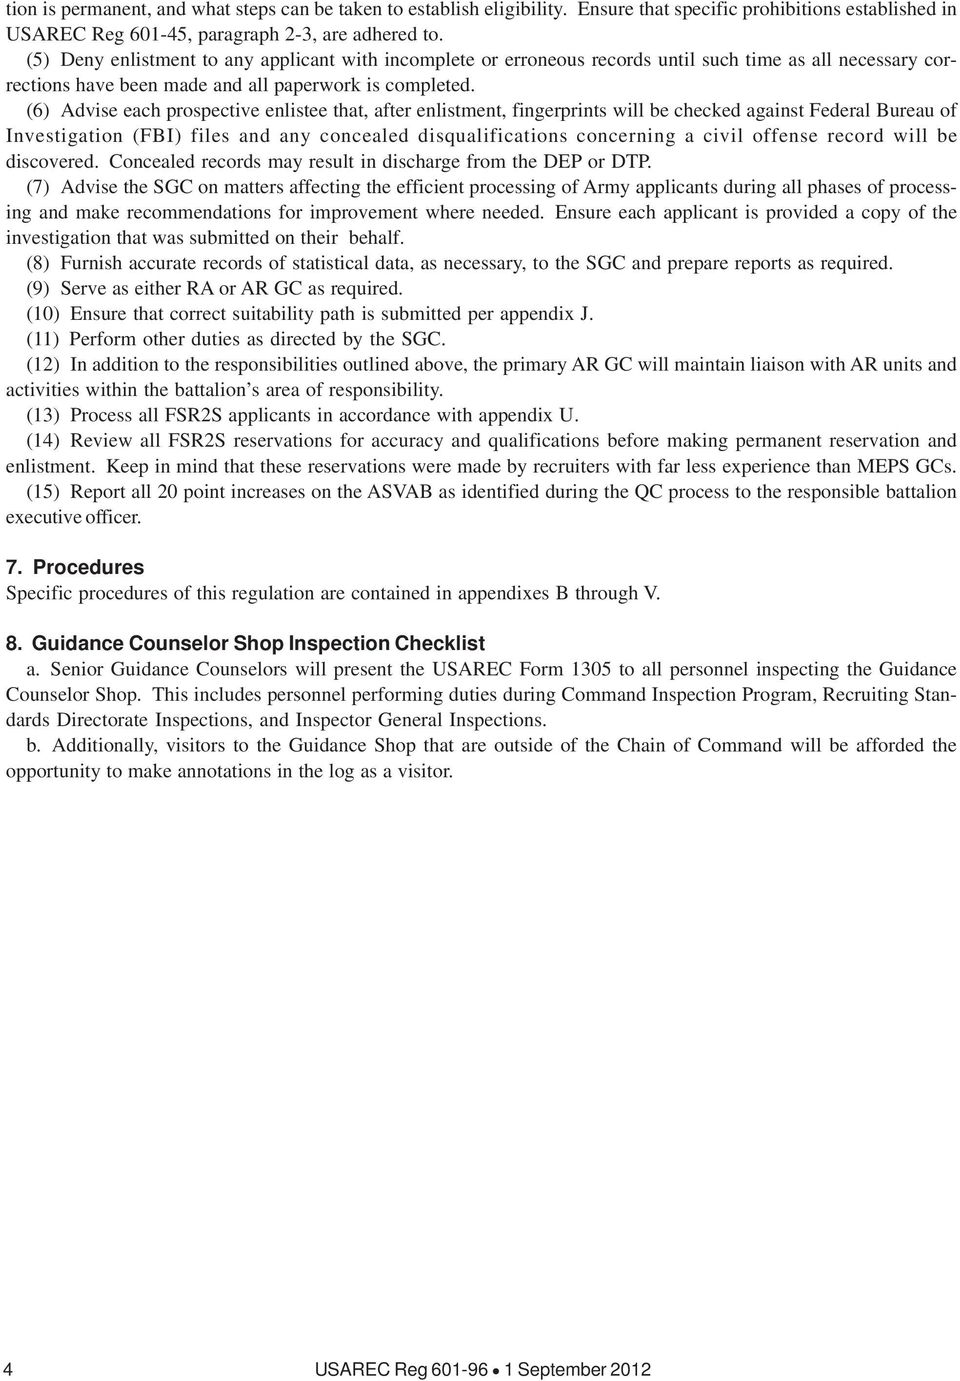 Enlistment accessions and processing procedures pdf 4 usarec reg september 2012 6 advise each prospective enlistee that after enlistment fingerprints will be checked fandeluxe Image collections